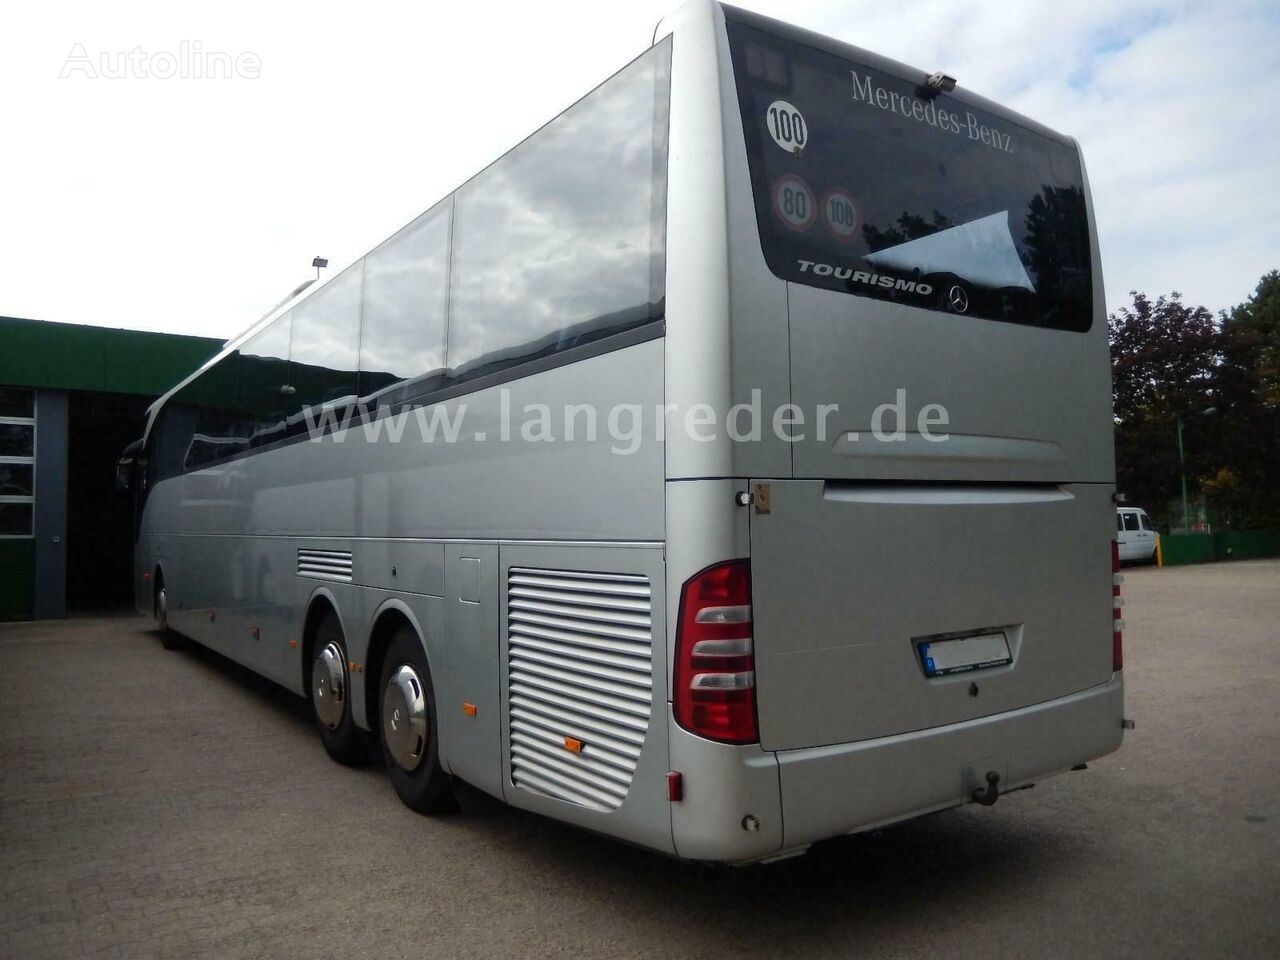 Mercedes benz tourismo rhd l coach buses for sale tourist for Mercedes benz coach bus